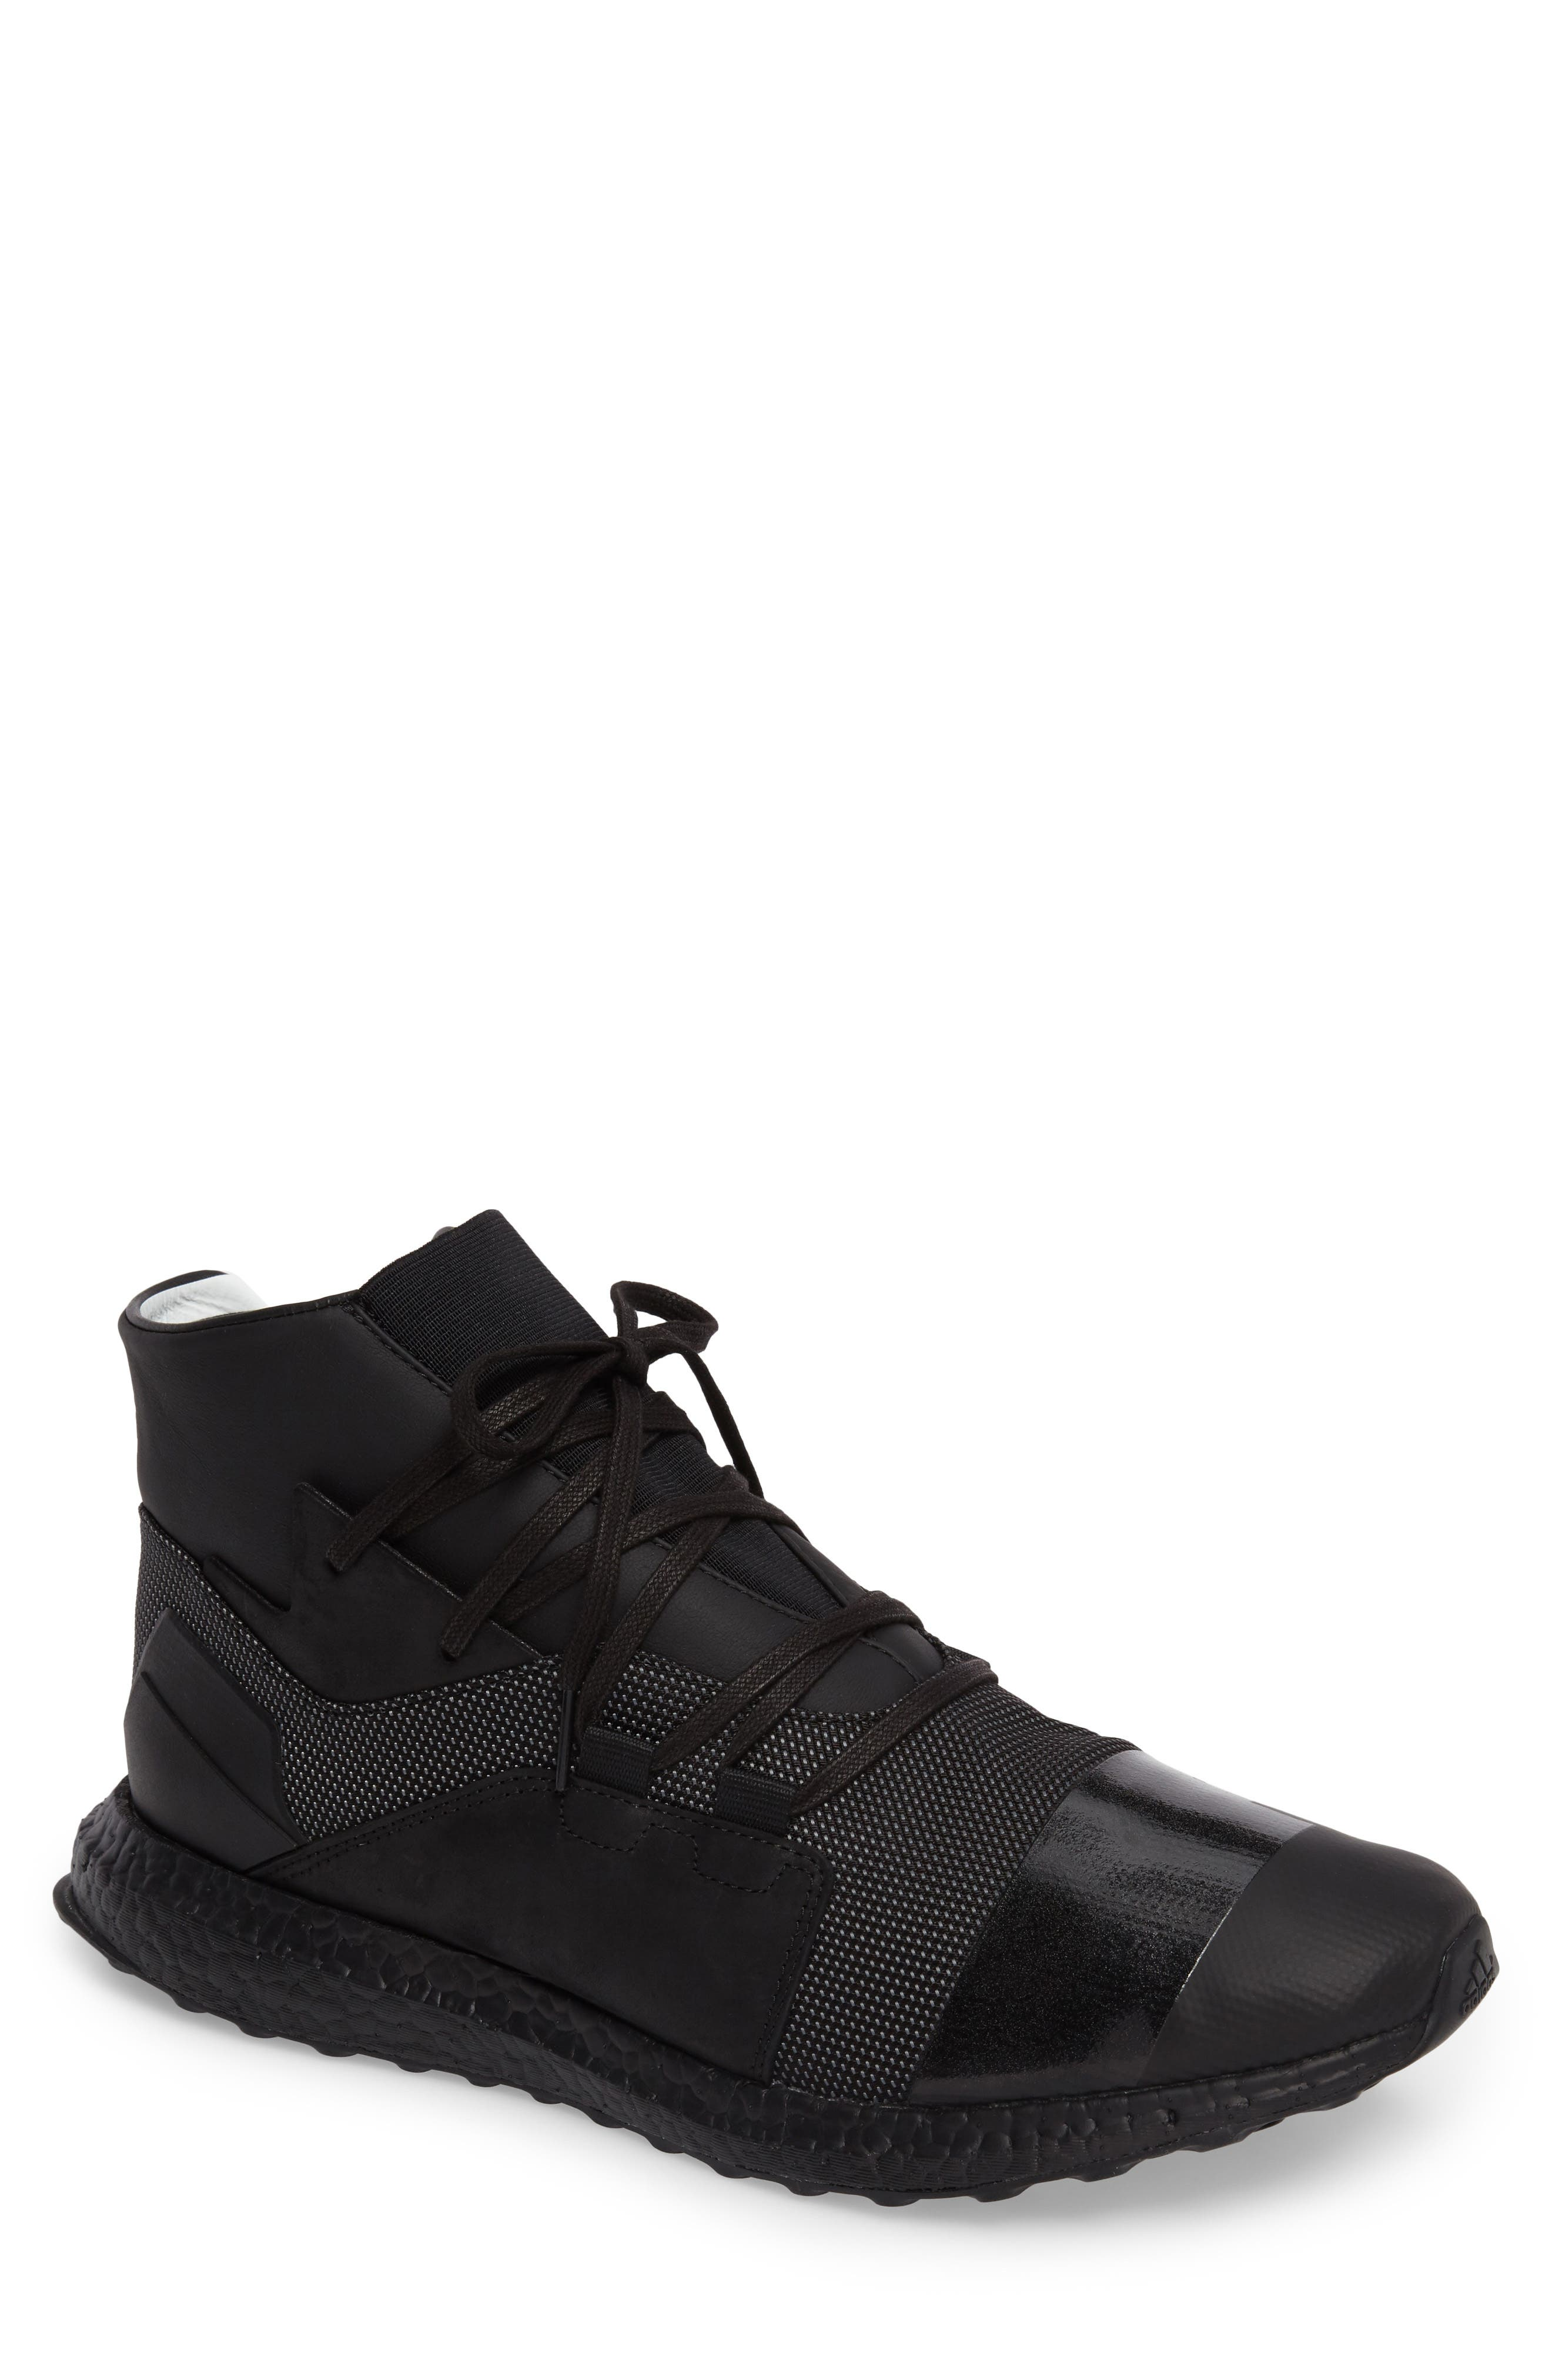 Y-3 Kozoko High Sneaker (Men)